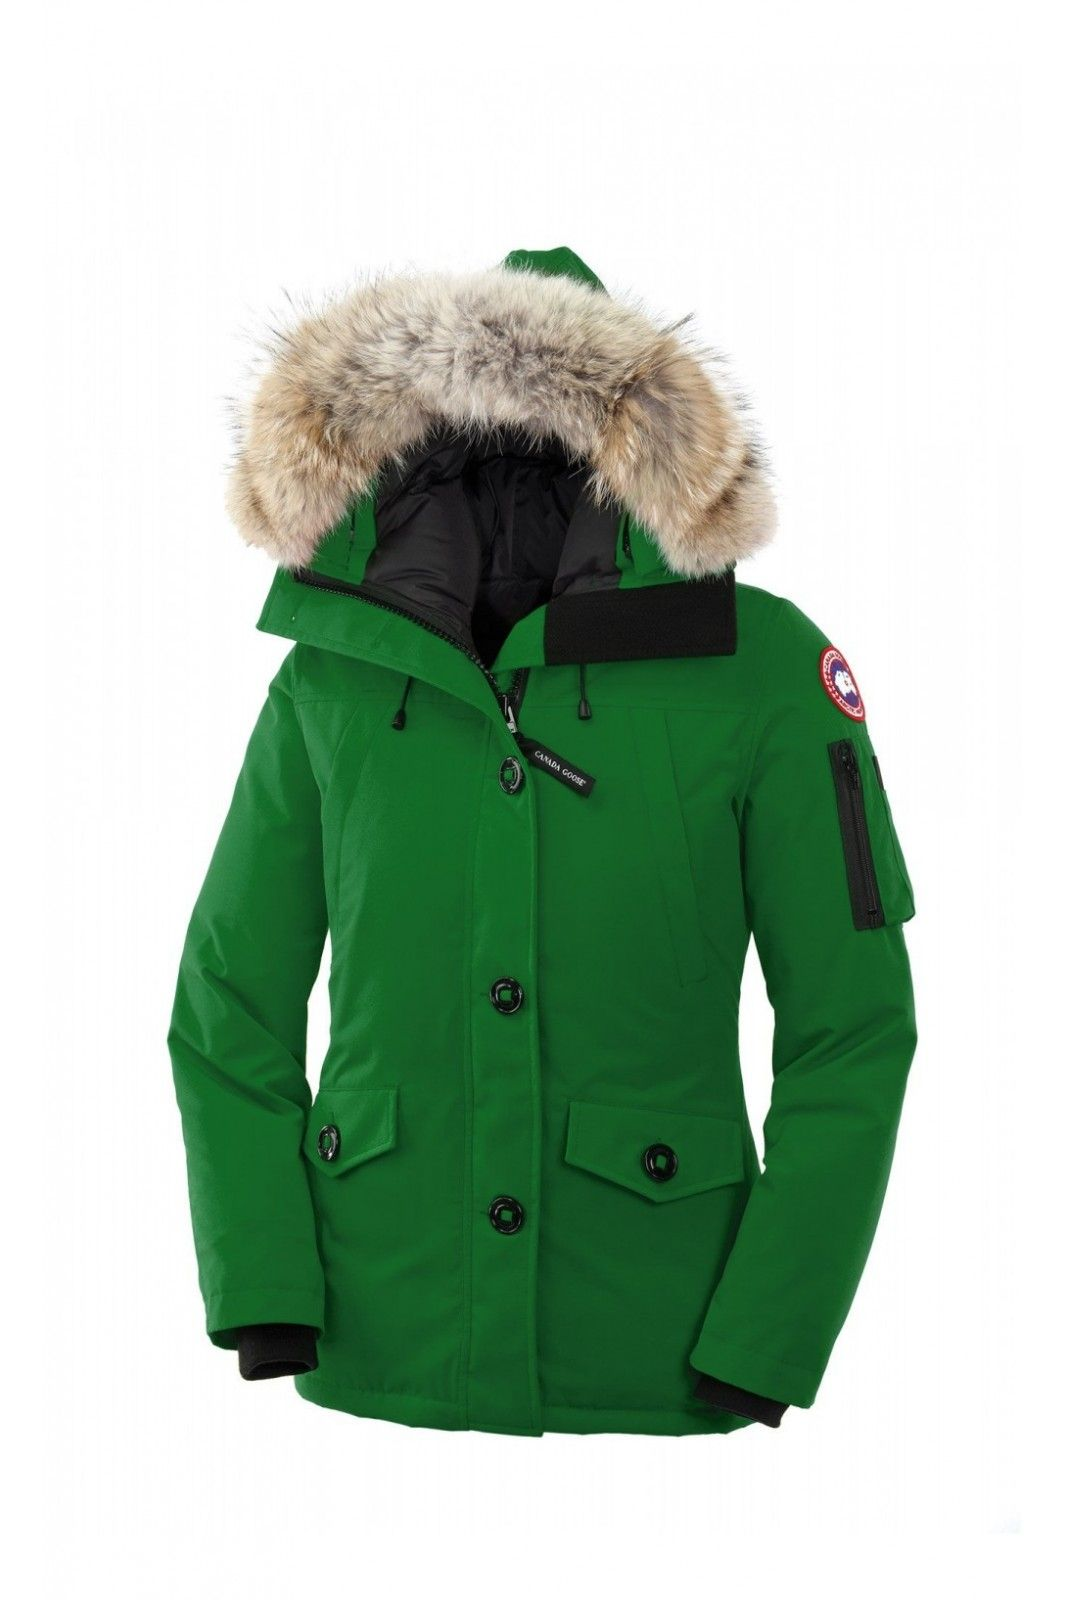 c9bbdb1f3 canadagoose#@$99 on | styling tips | Fashion, Parka, Canada goose parka